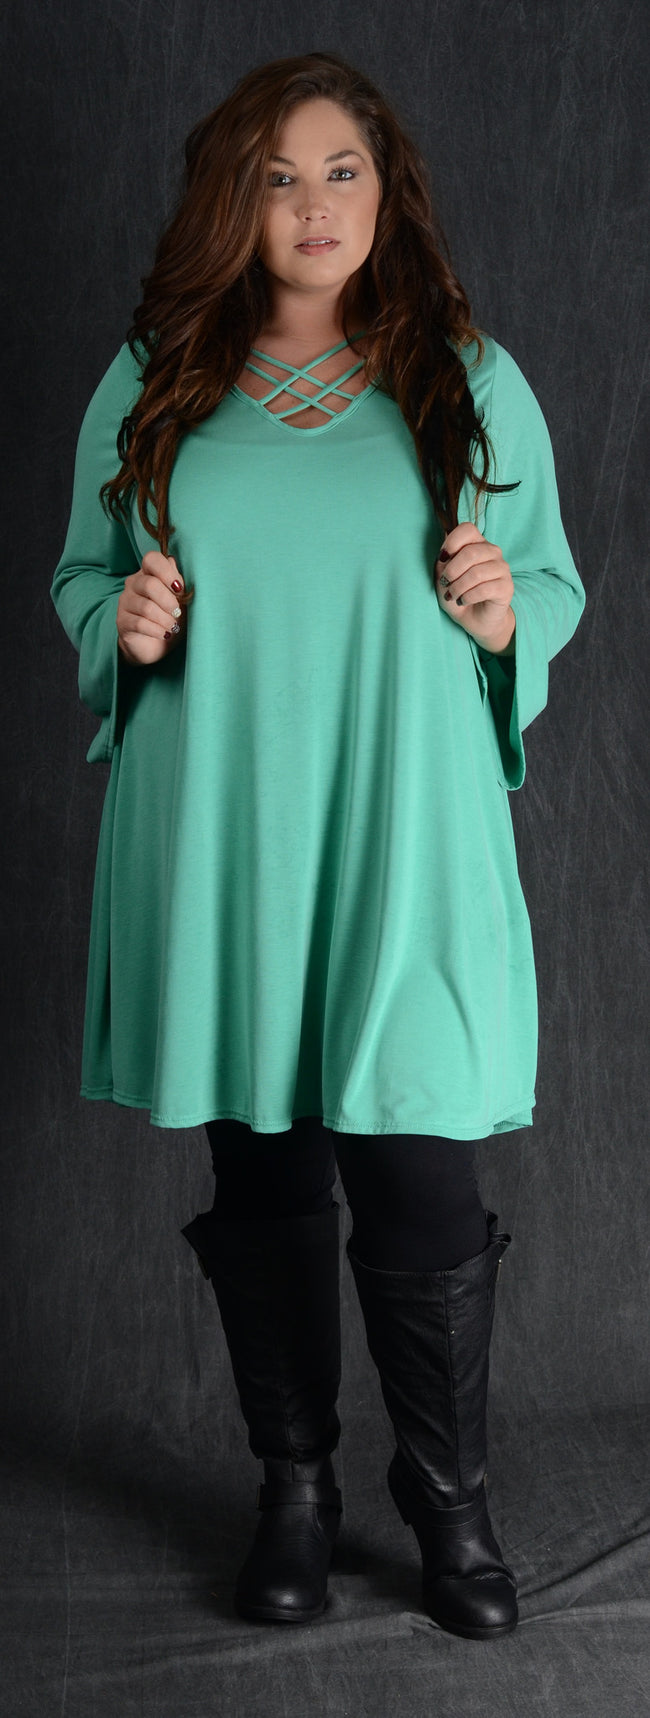 Mint Swing Corset Dress - www.mycurvystore.com - Curvy Boutique - Plus Size